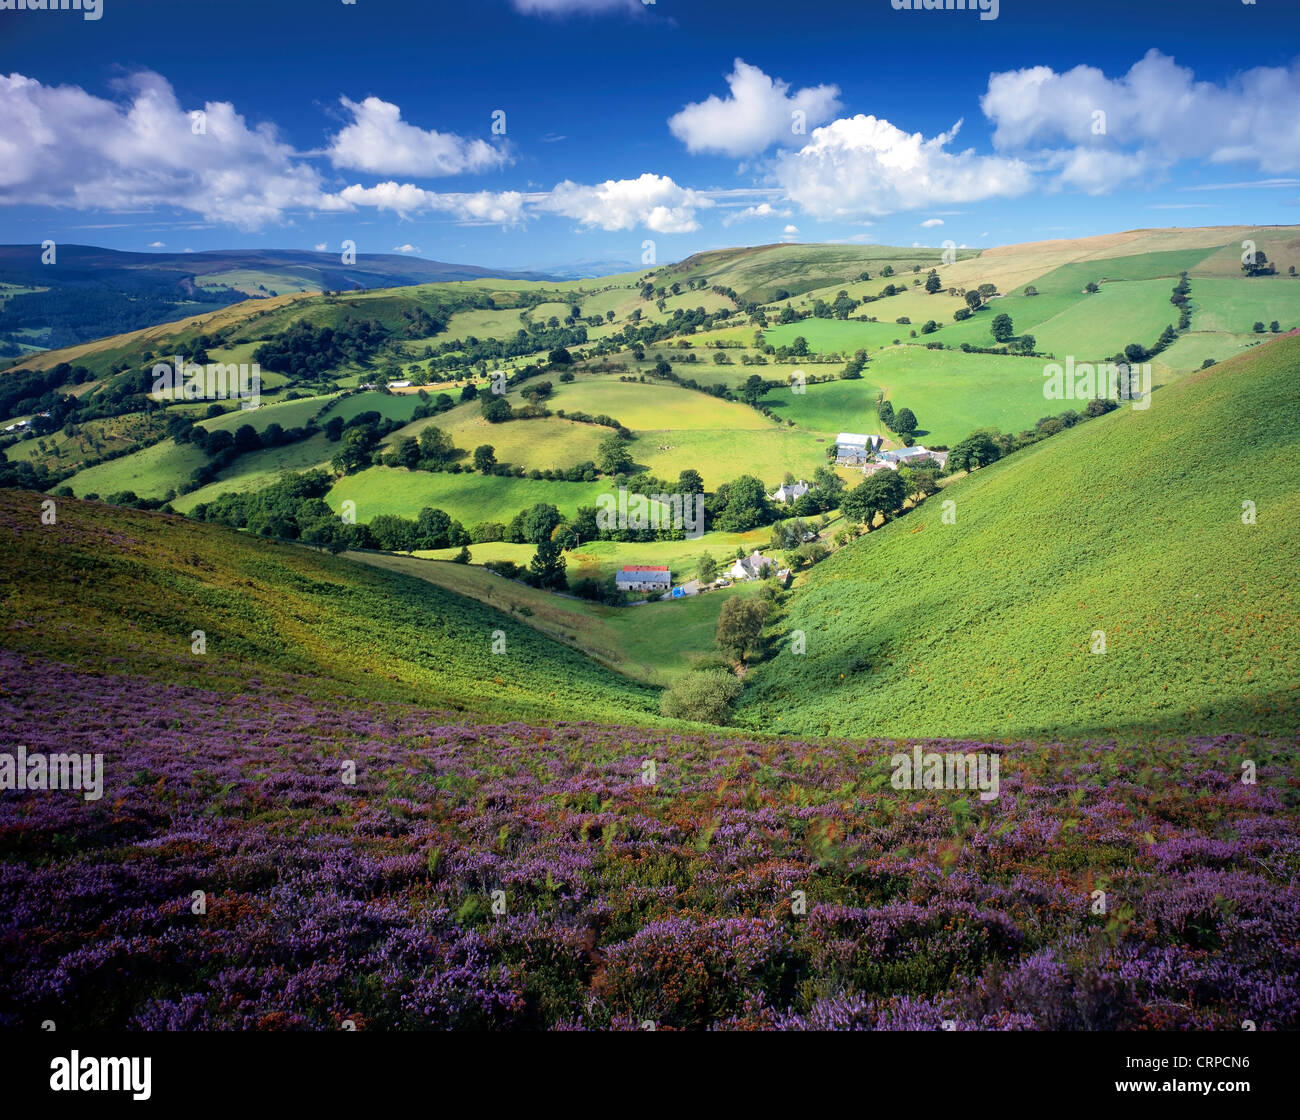 View across a heather-clad valley in the Llantysilio Hills. - Stock Image